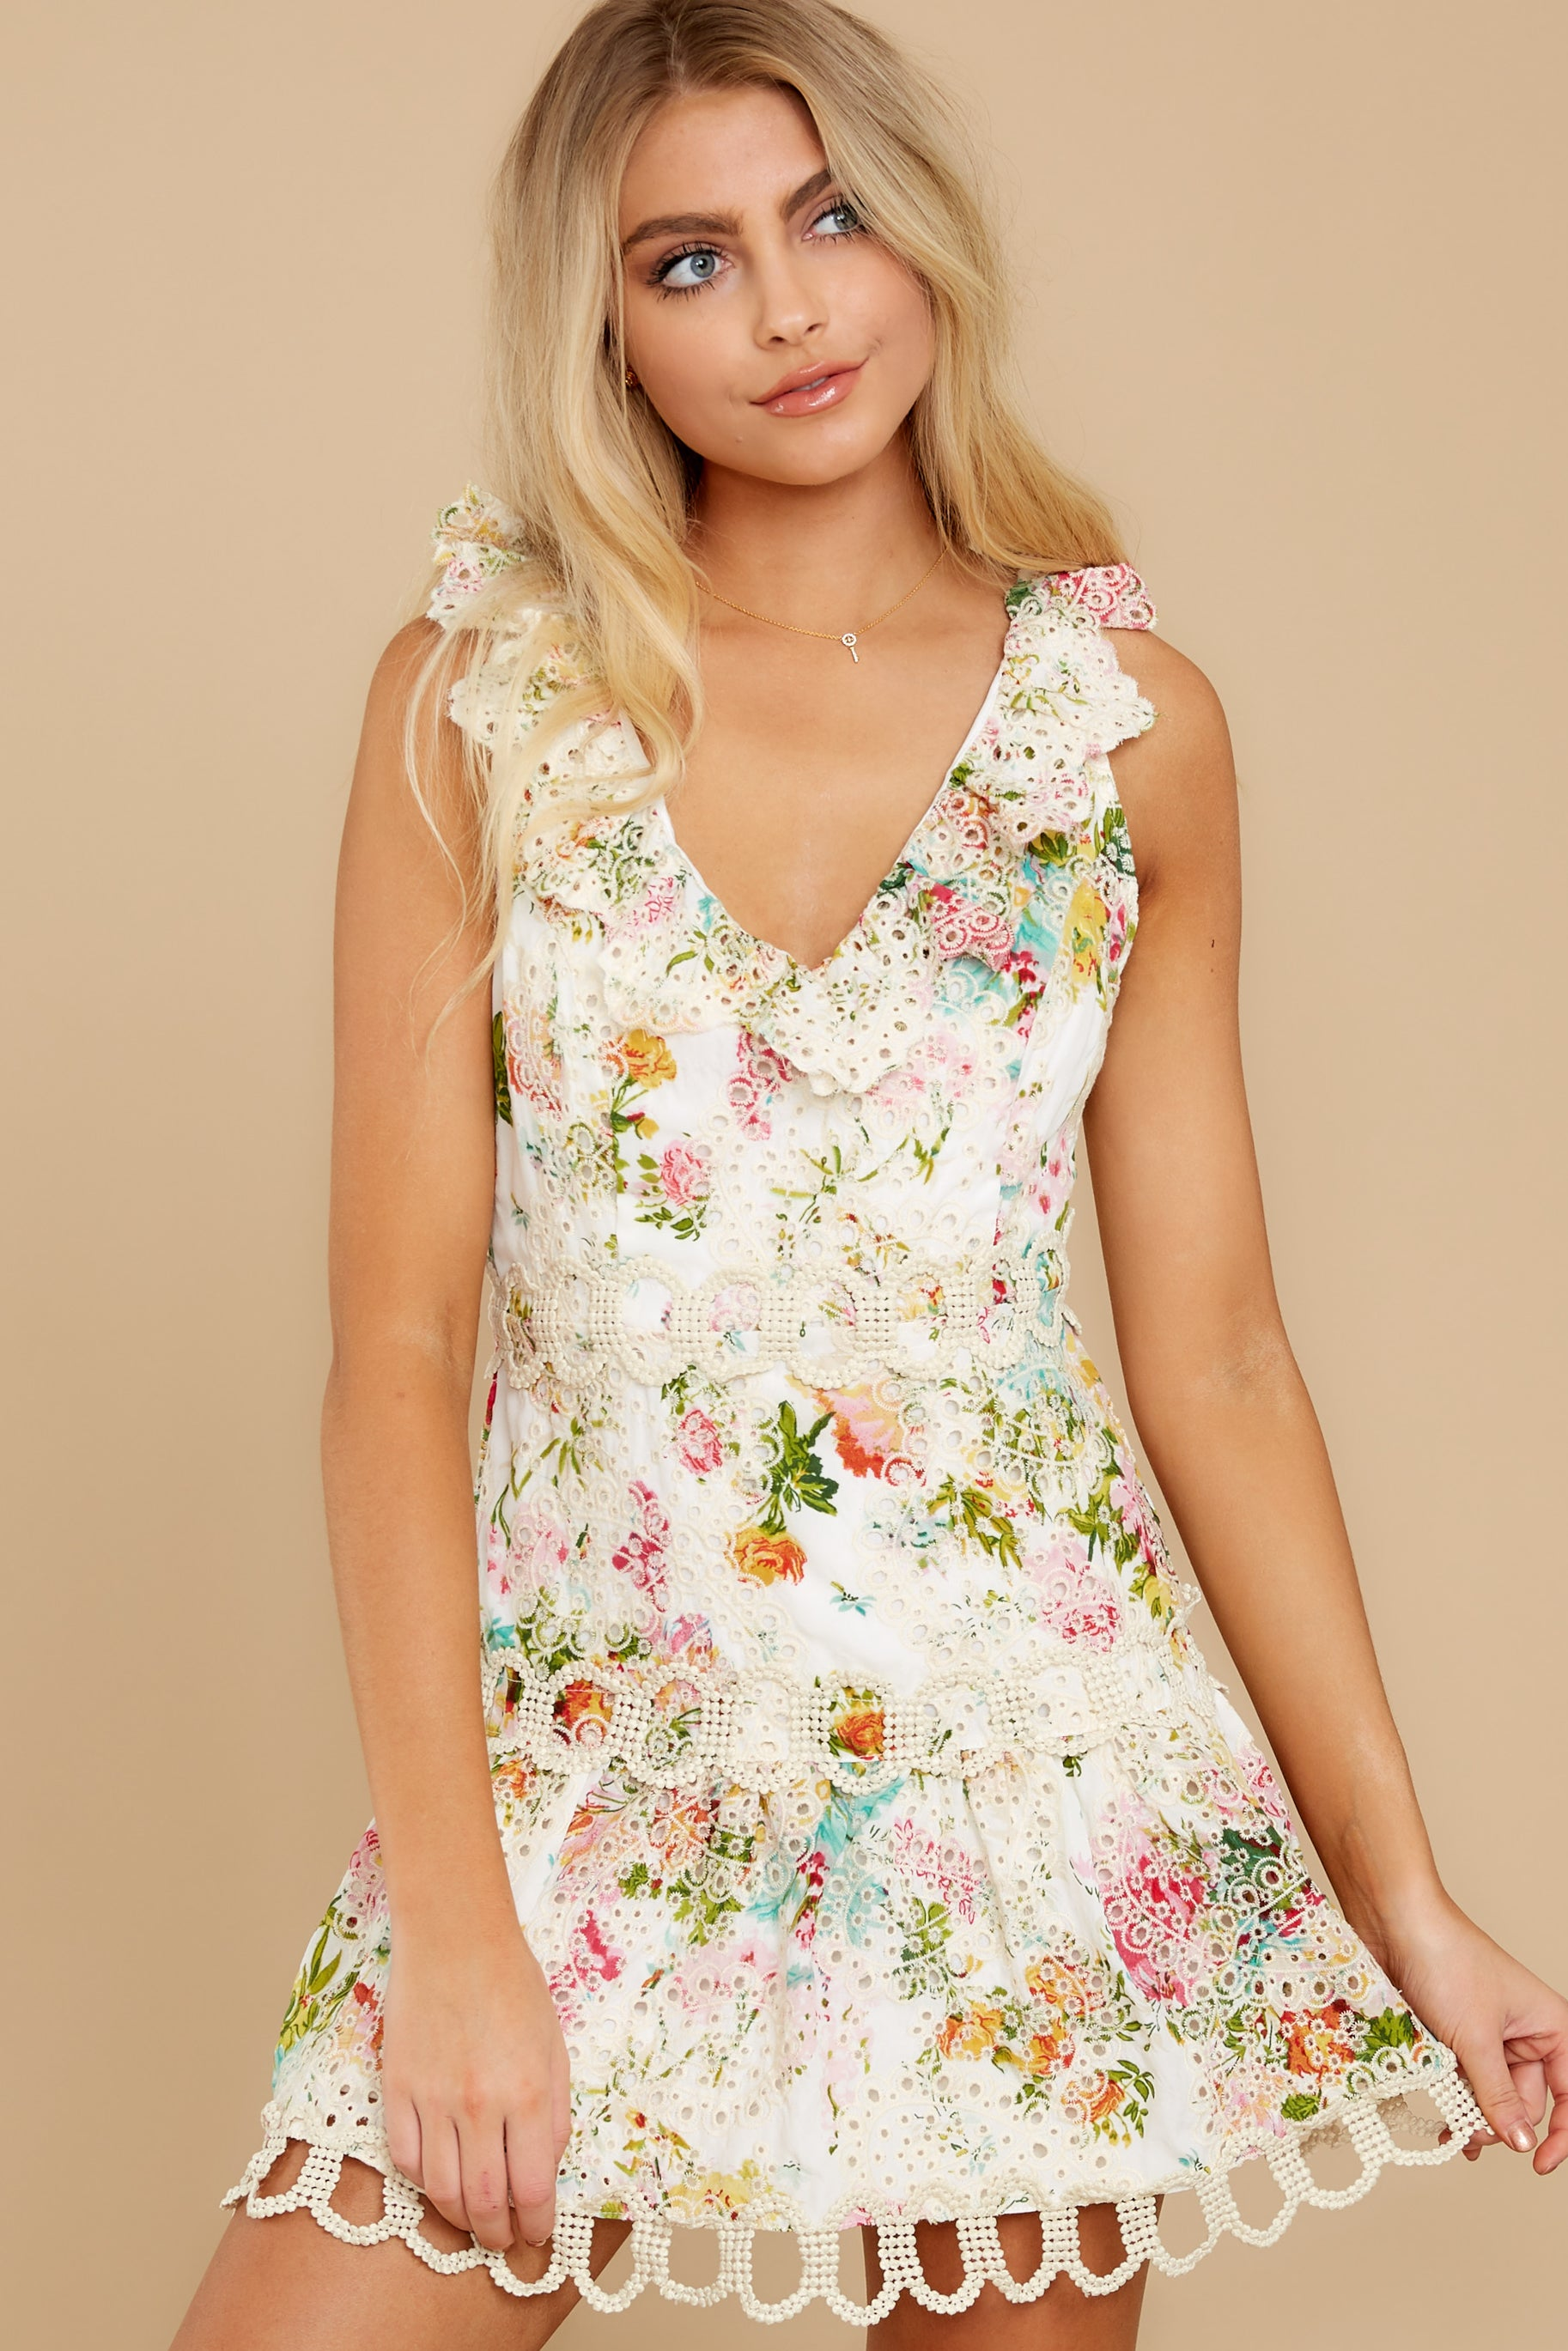 6 Looking For The One Floral Eyelet Dress at reddress.com